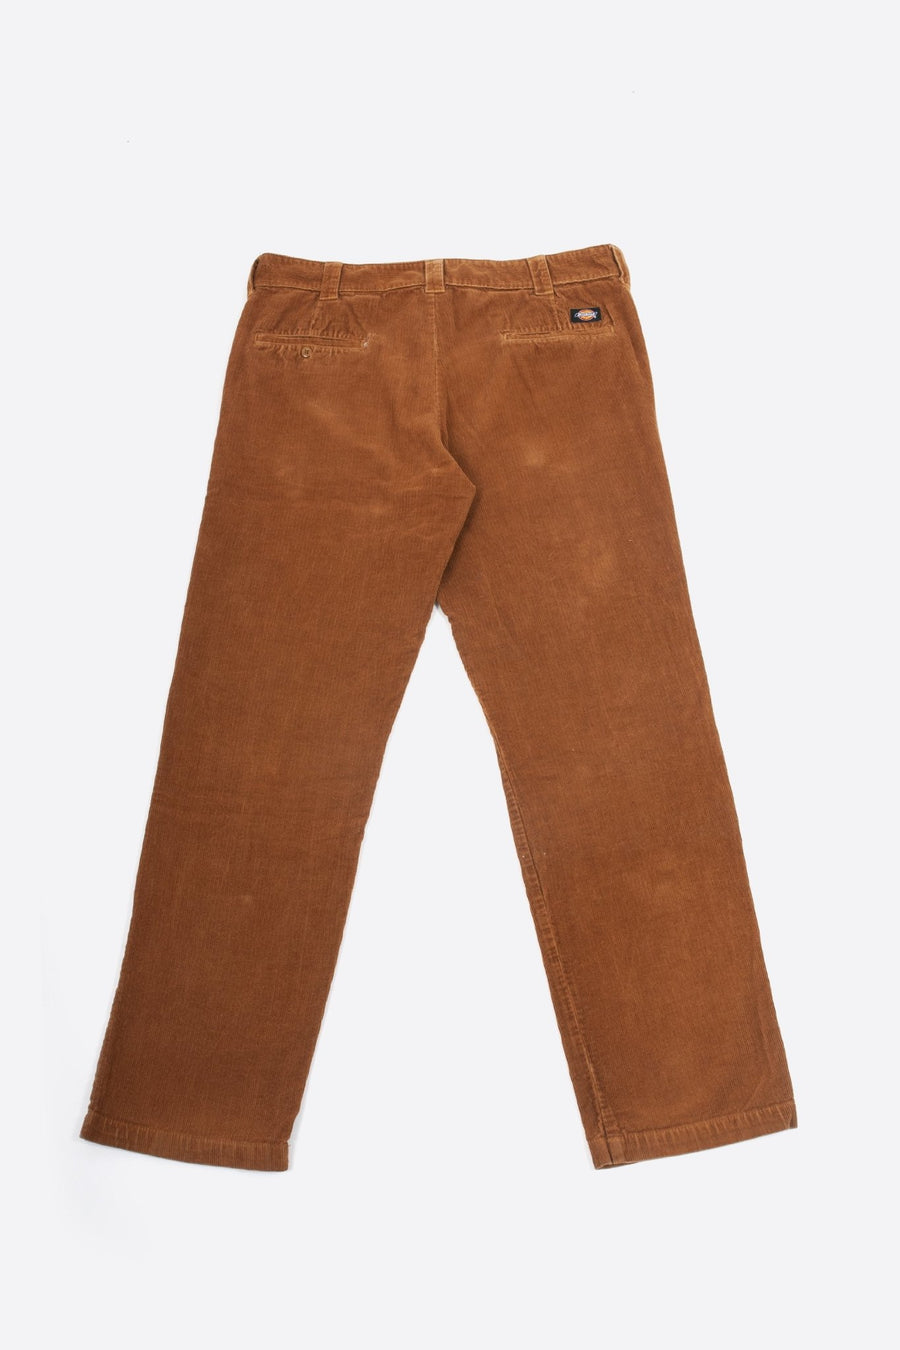 Pantalon Dickies Velours Camel - WASTED PARIS